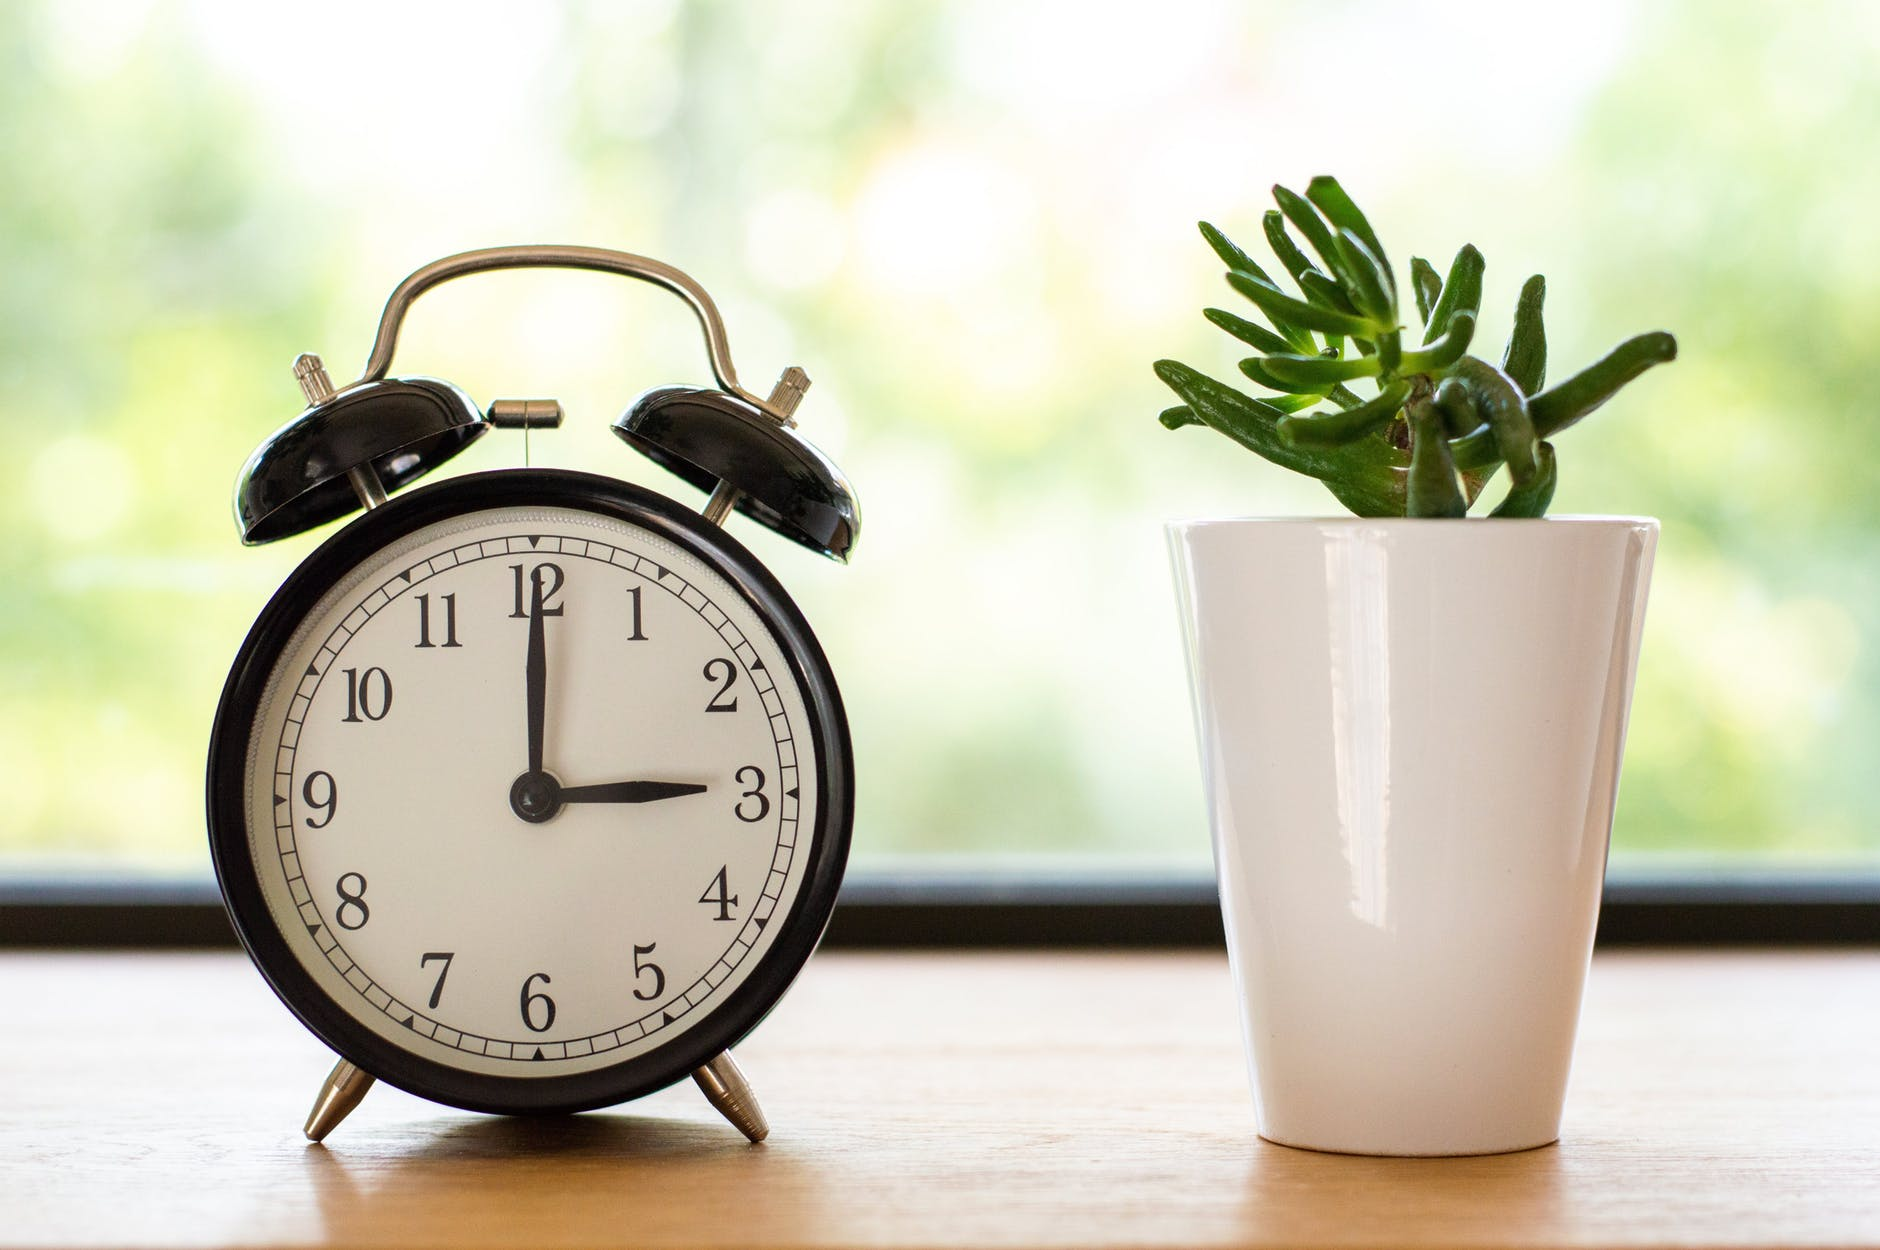 It's Time . . . To Spring Forward